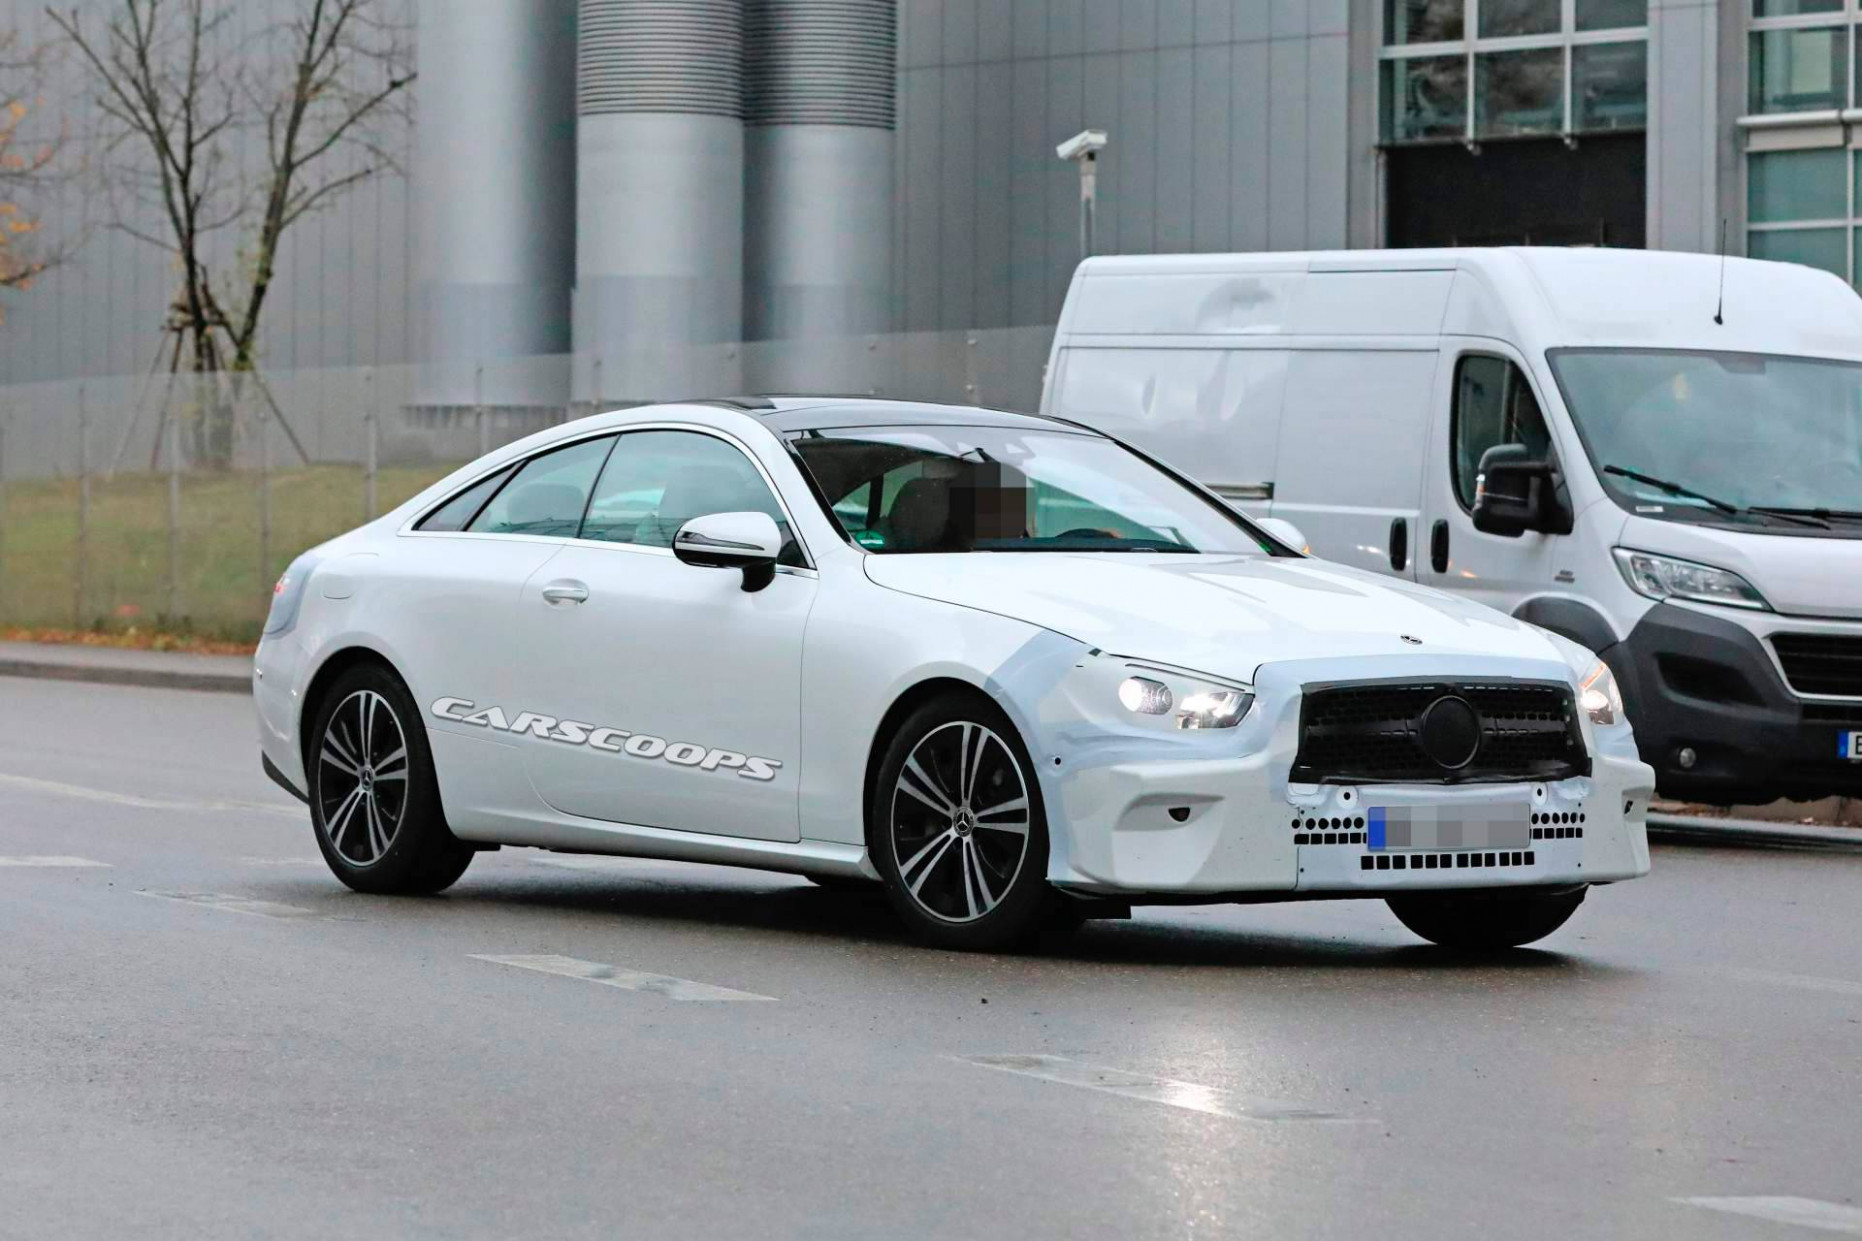 Mercedes E-Class Coupe gets new face - first pics - MercedesBlog - 2020 mercedes e class coupe